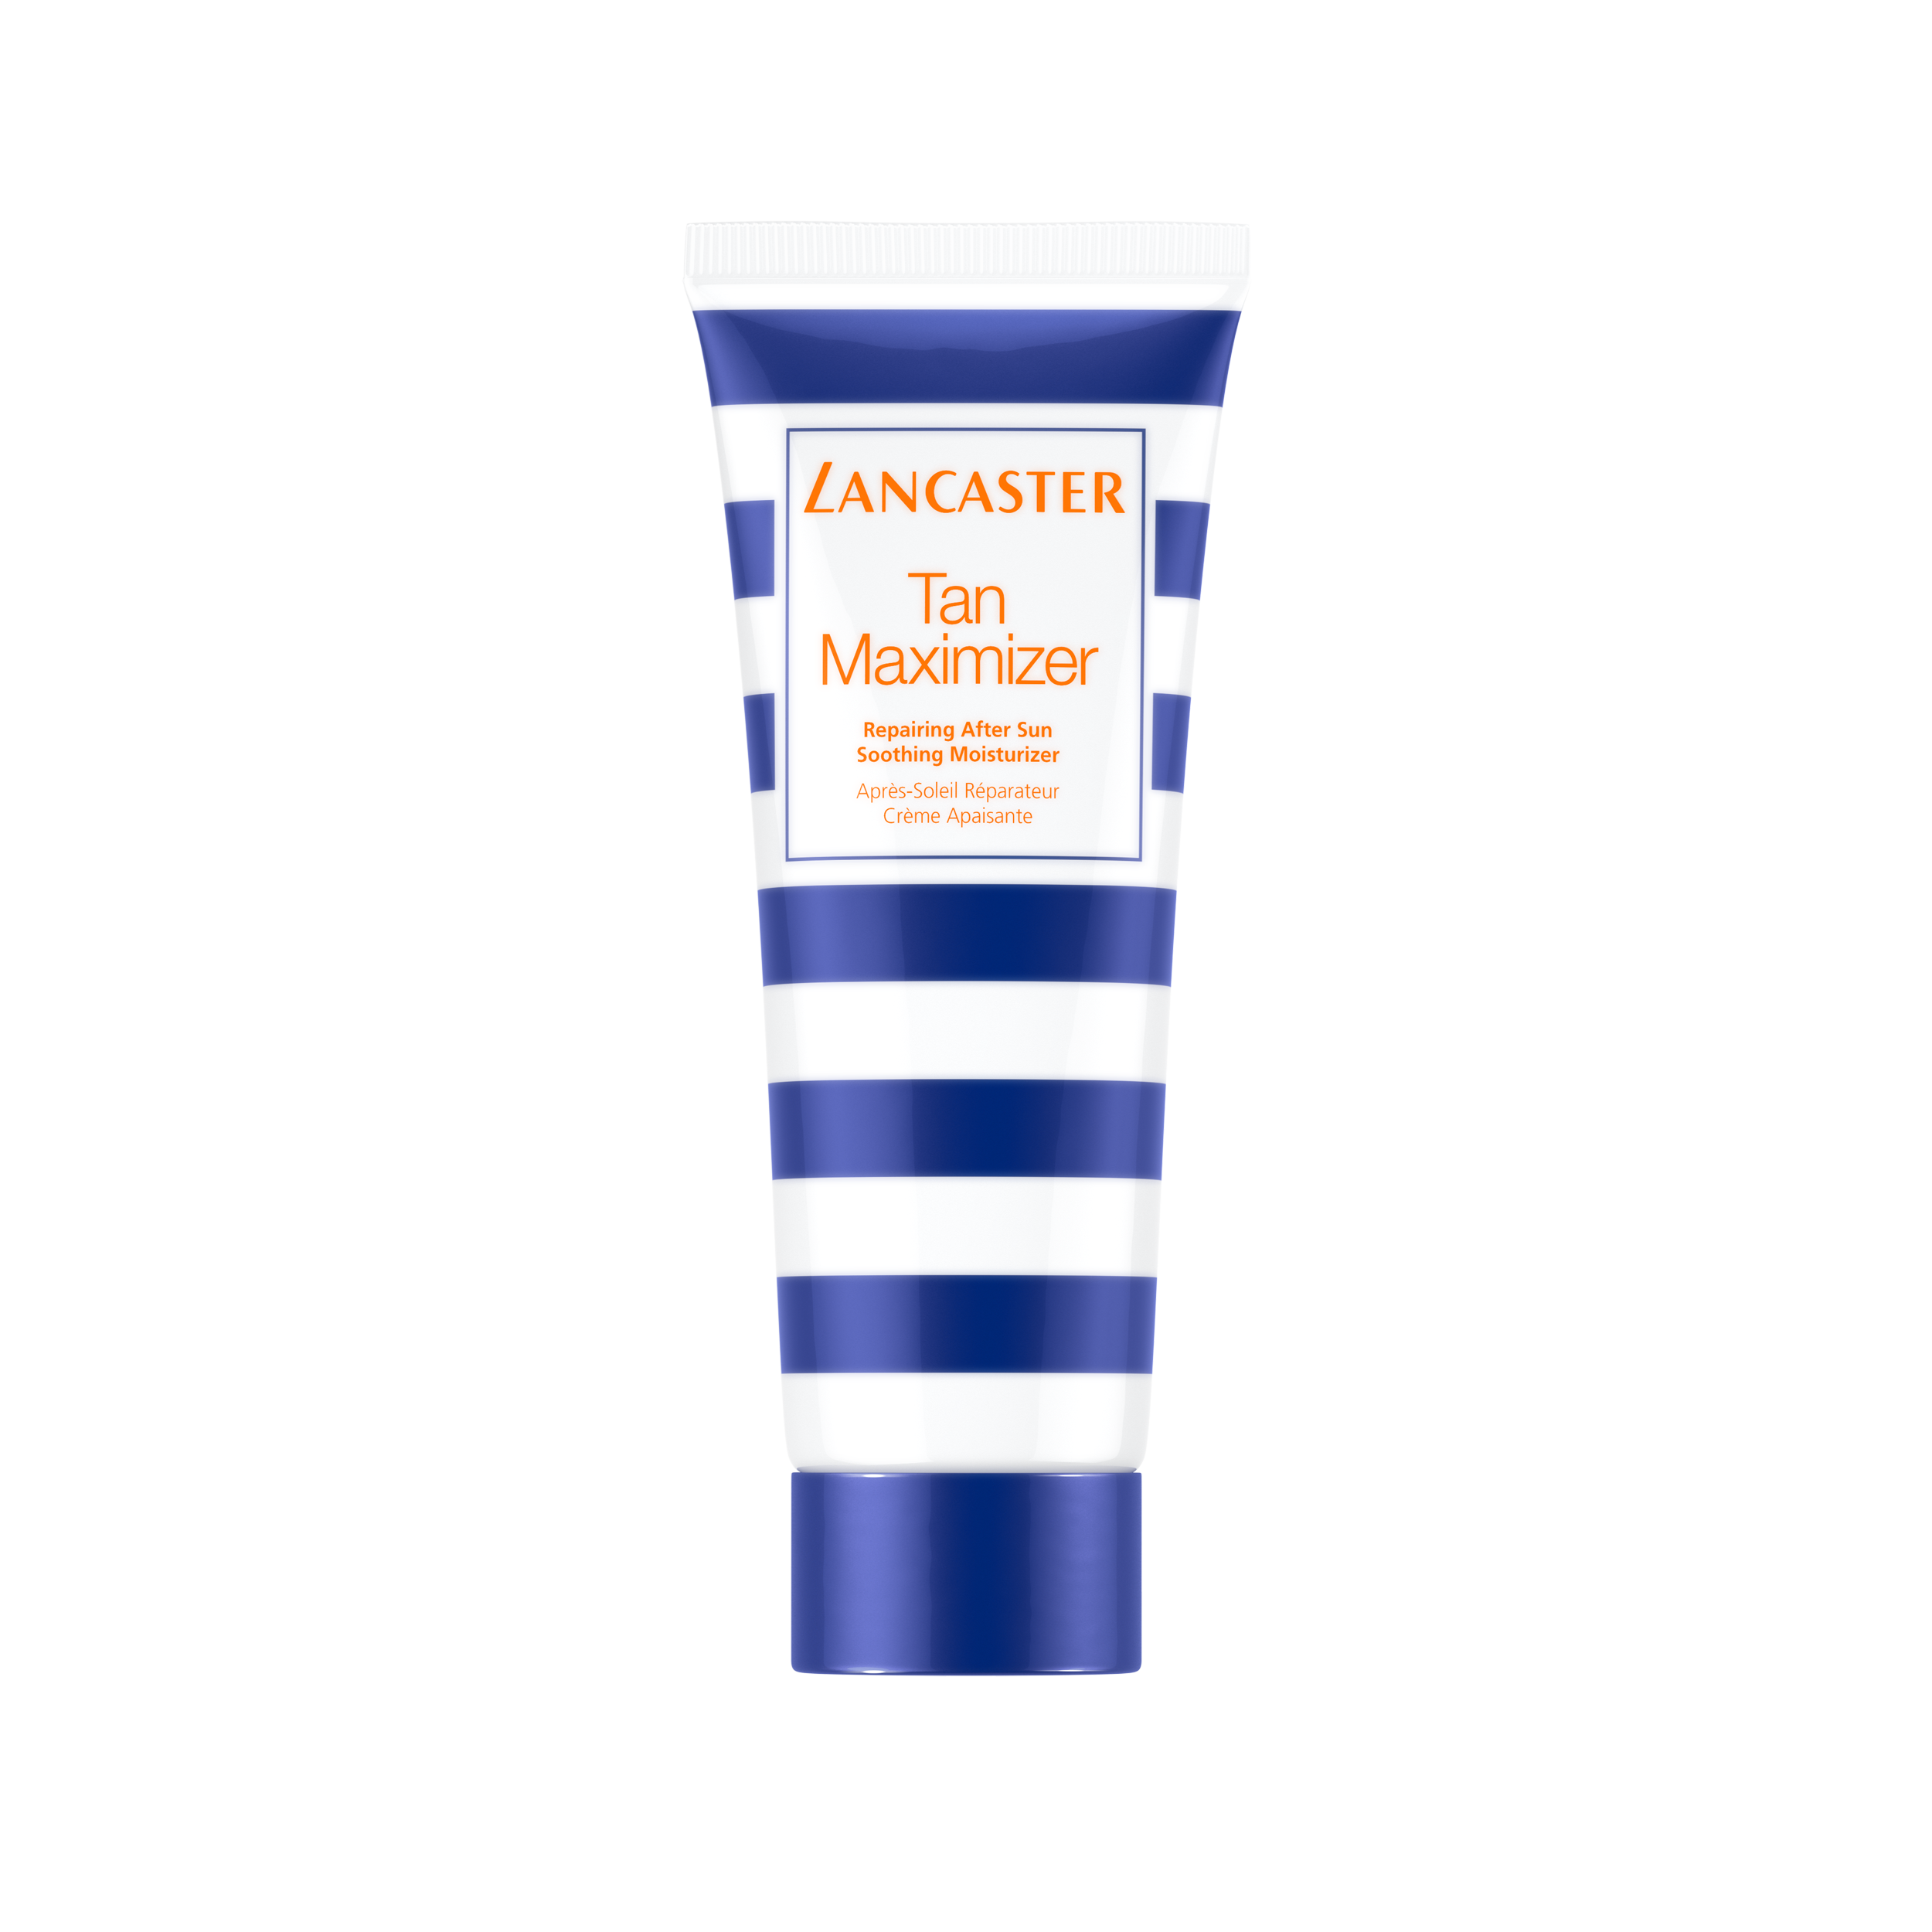 TAN MAXIMIZER REPAIRING AFTER SUN SOOTHING MOISTURIZER